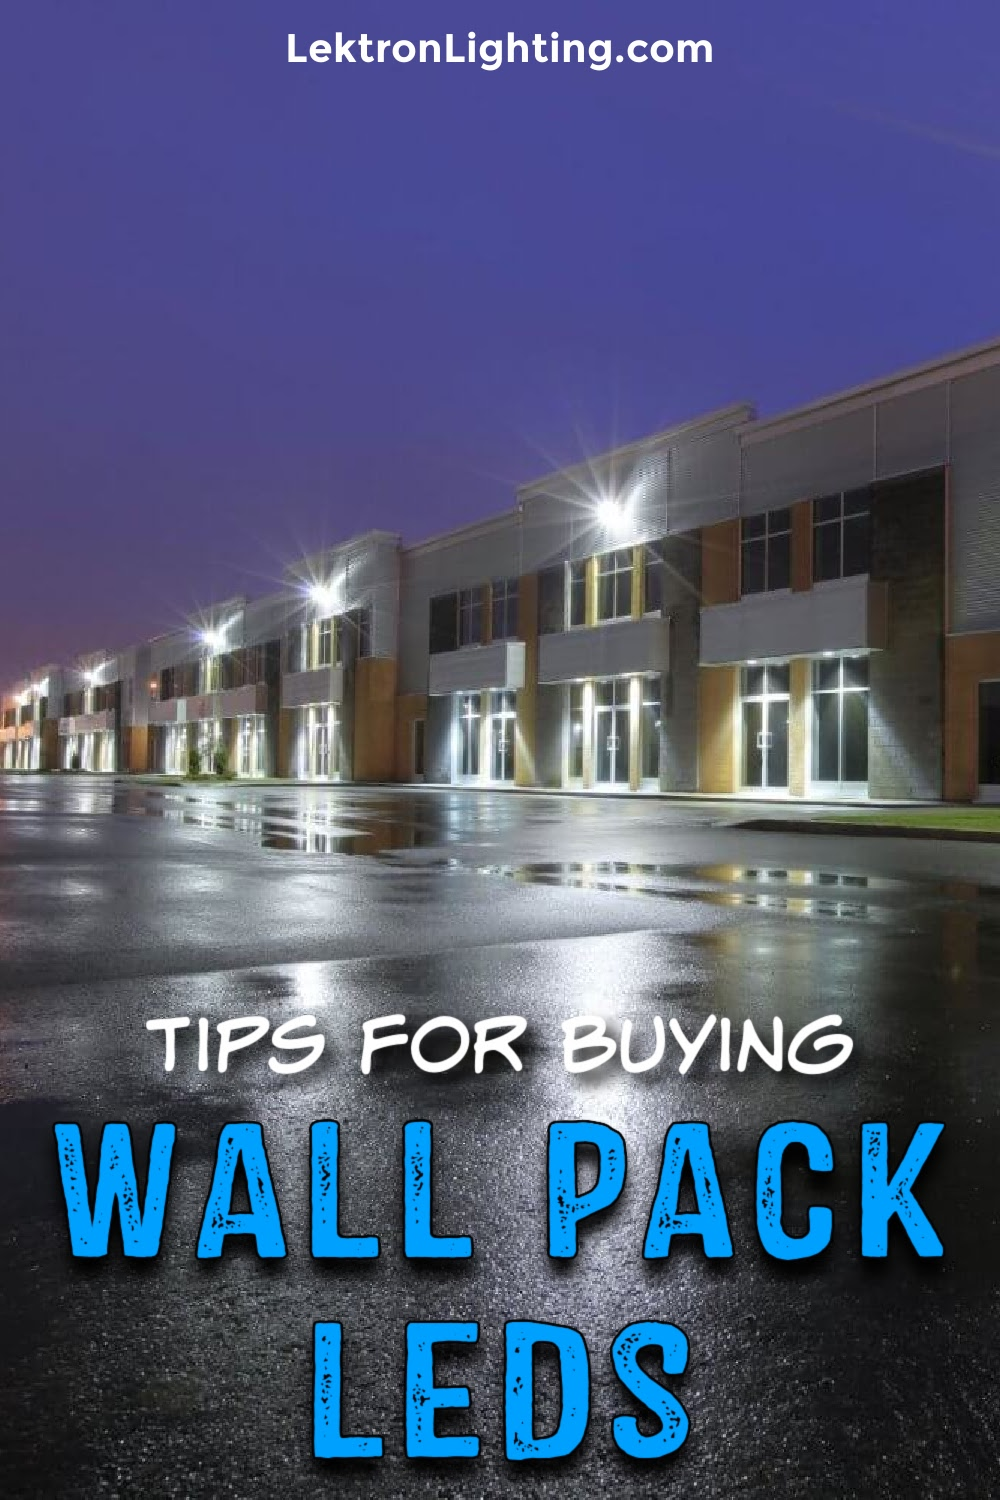 Tips for buying wall pack LED lighting can help save you time, money, and energy when deciding which one is best for you.